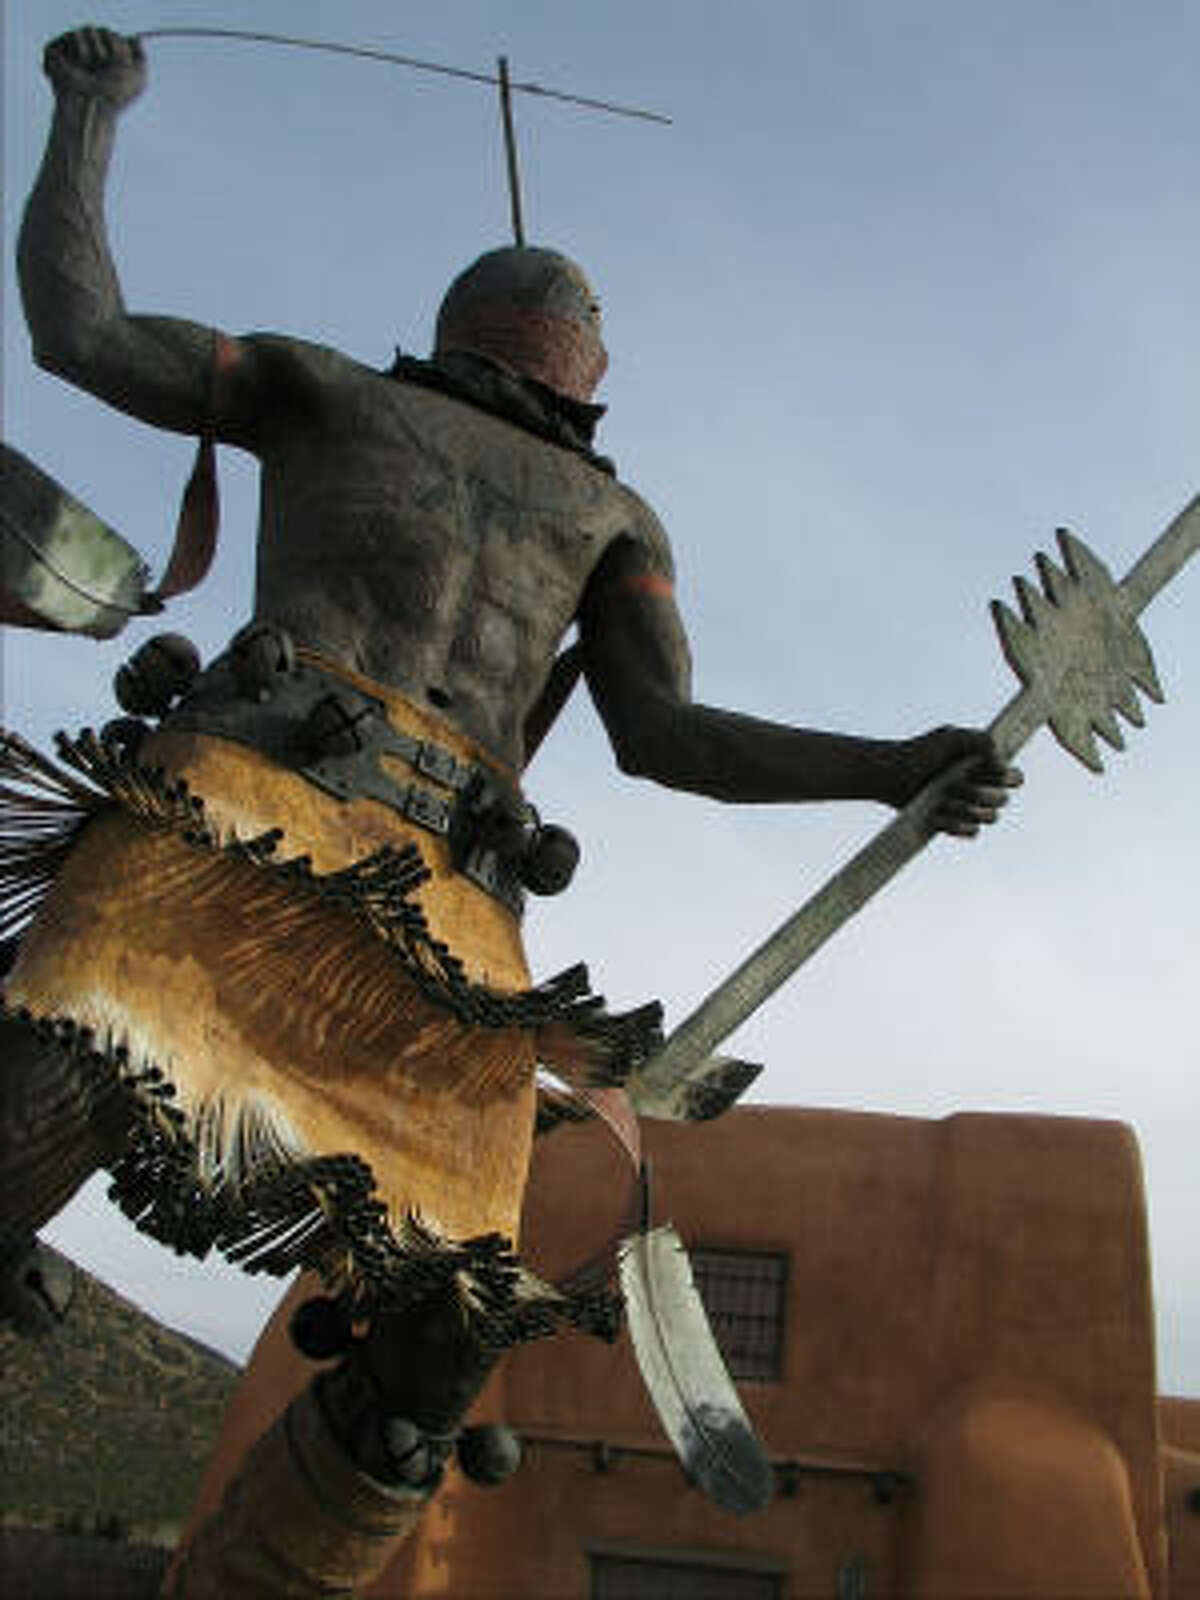 This sculpture of an Indian stands outside the Museum of Indian Arts and Culture in Santa Fe.